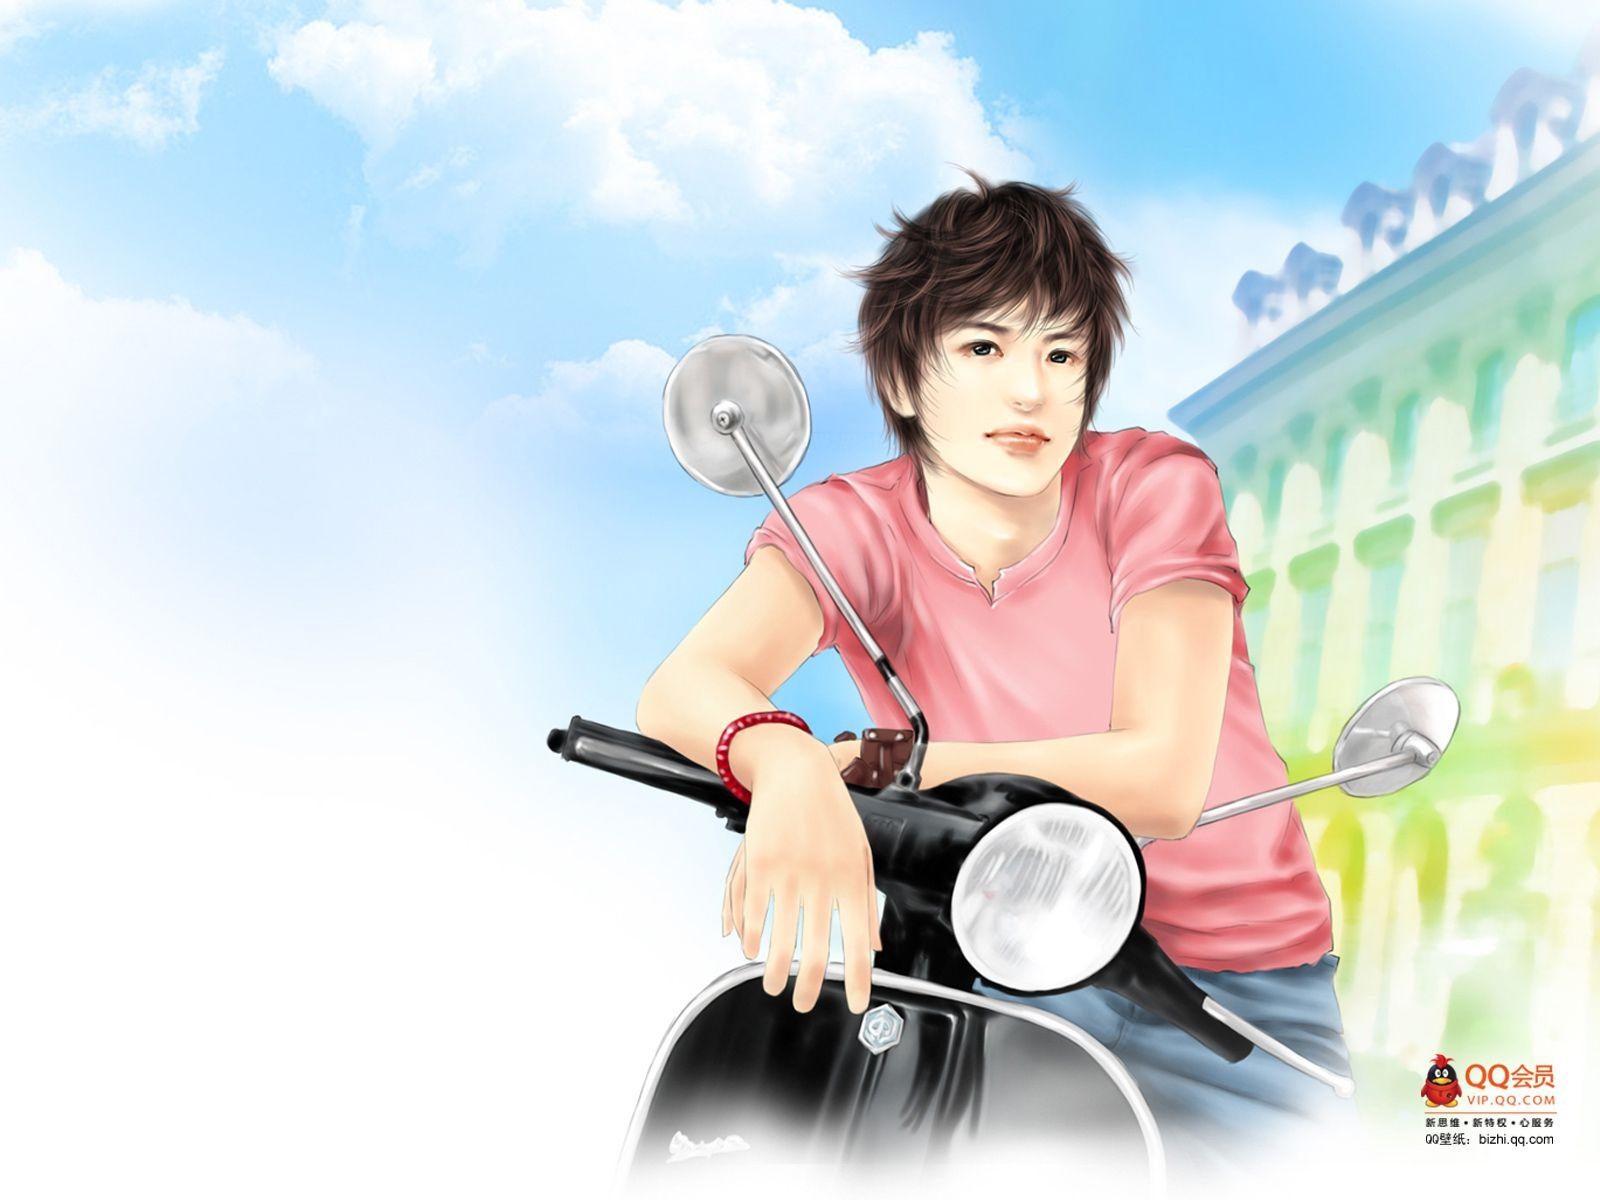 Cool Boy Wallpapers Cartoon Anime Guy Wallpapers Group